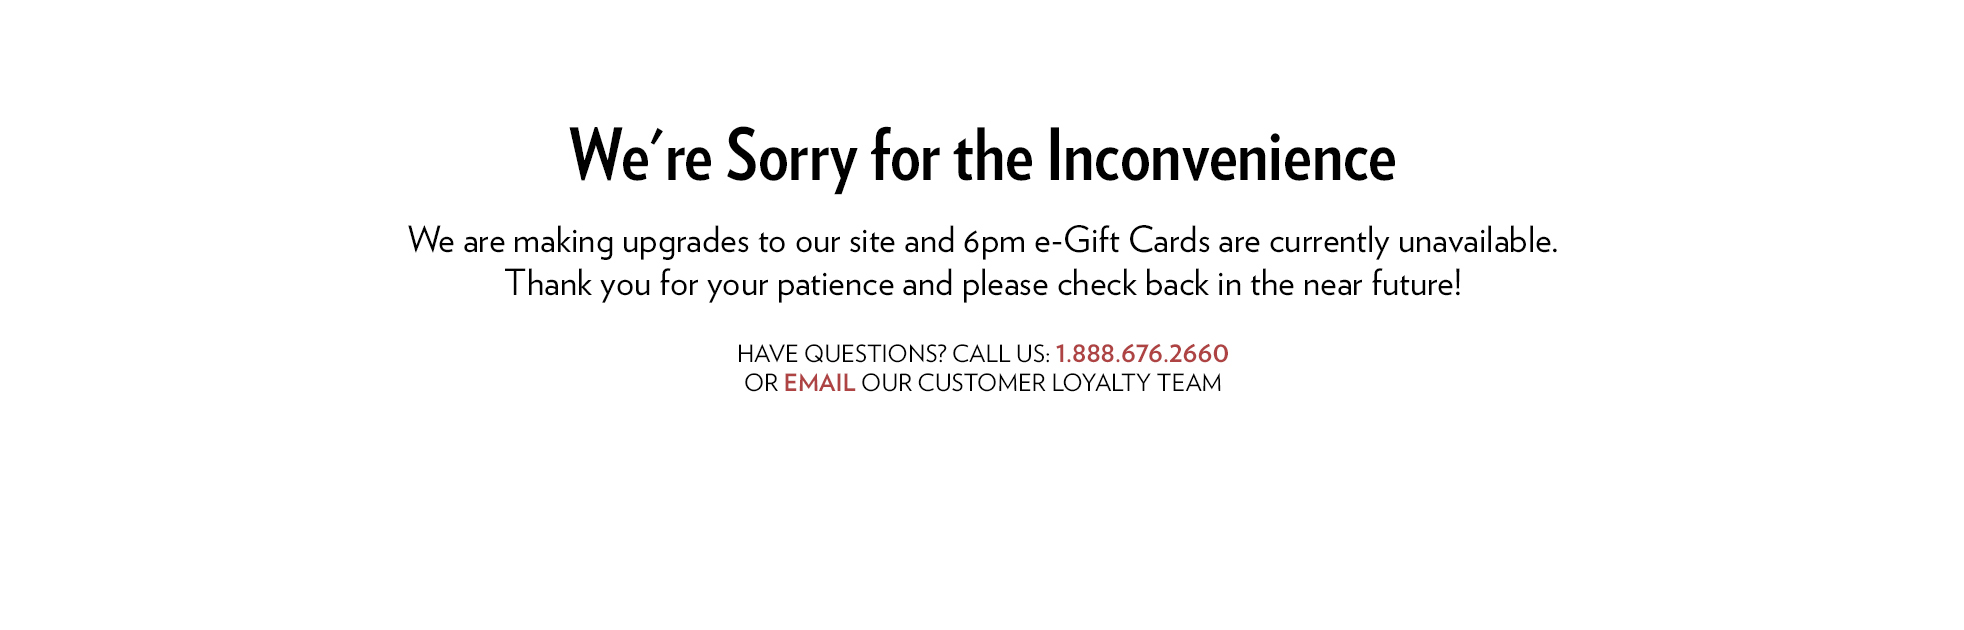 We're sorry for the inconvenience. We are making upgrades to our site and 6pm eGift Cards are currently unavailable. Thank you for your patience and please check back in the near future! If you have any questions click here to be directed to the Contact Us page.